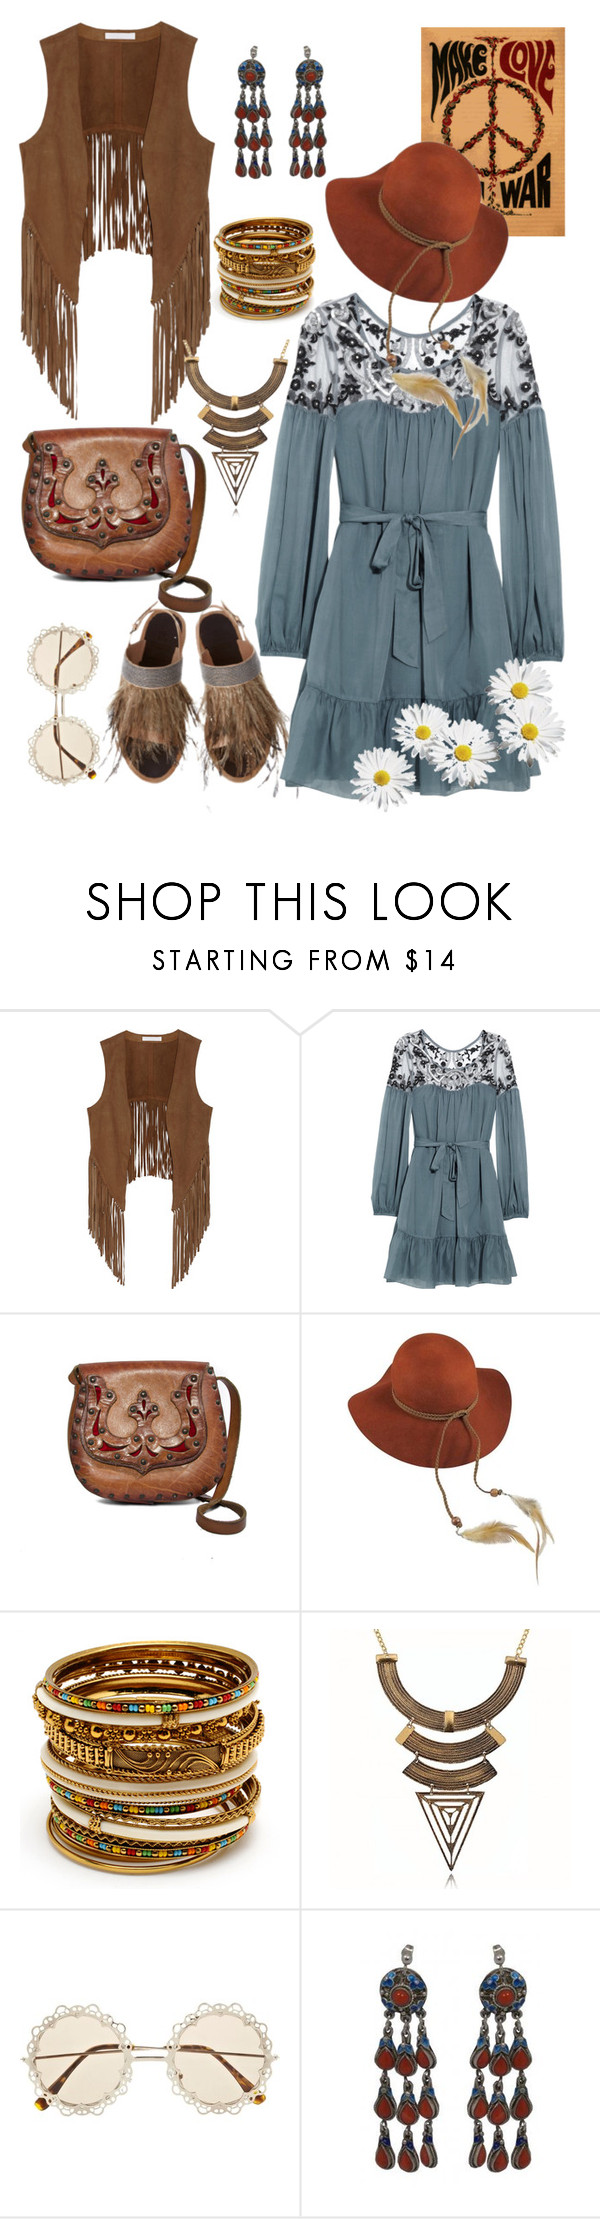 """Hippie waistcoat"" by fatange ❤ liked on Polyvore featuring W118 by Walter Baker, Temperley London, Lovely Bird, Amrita Singh, River Island and Clips"